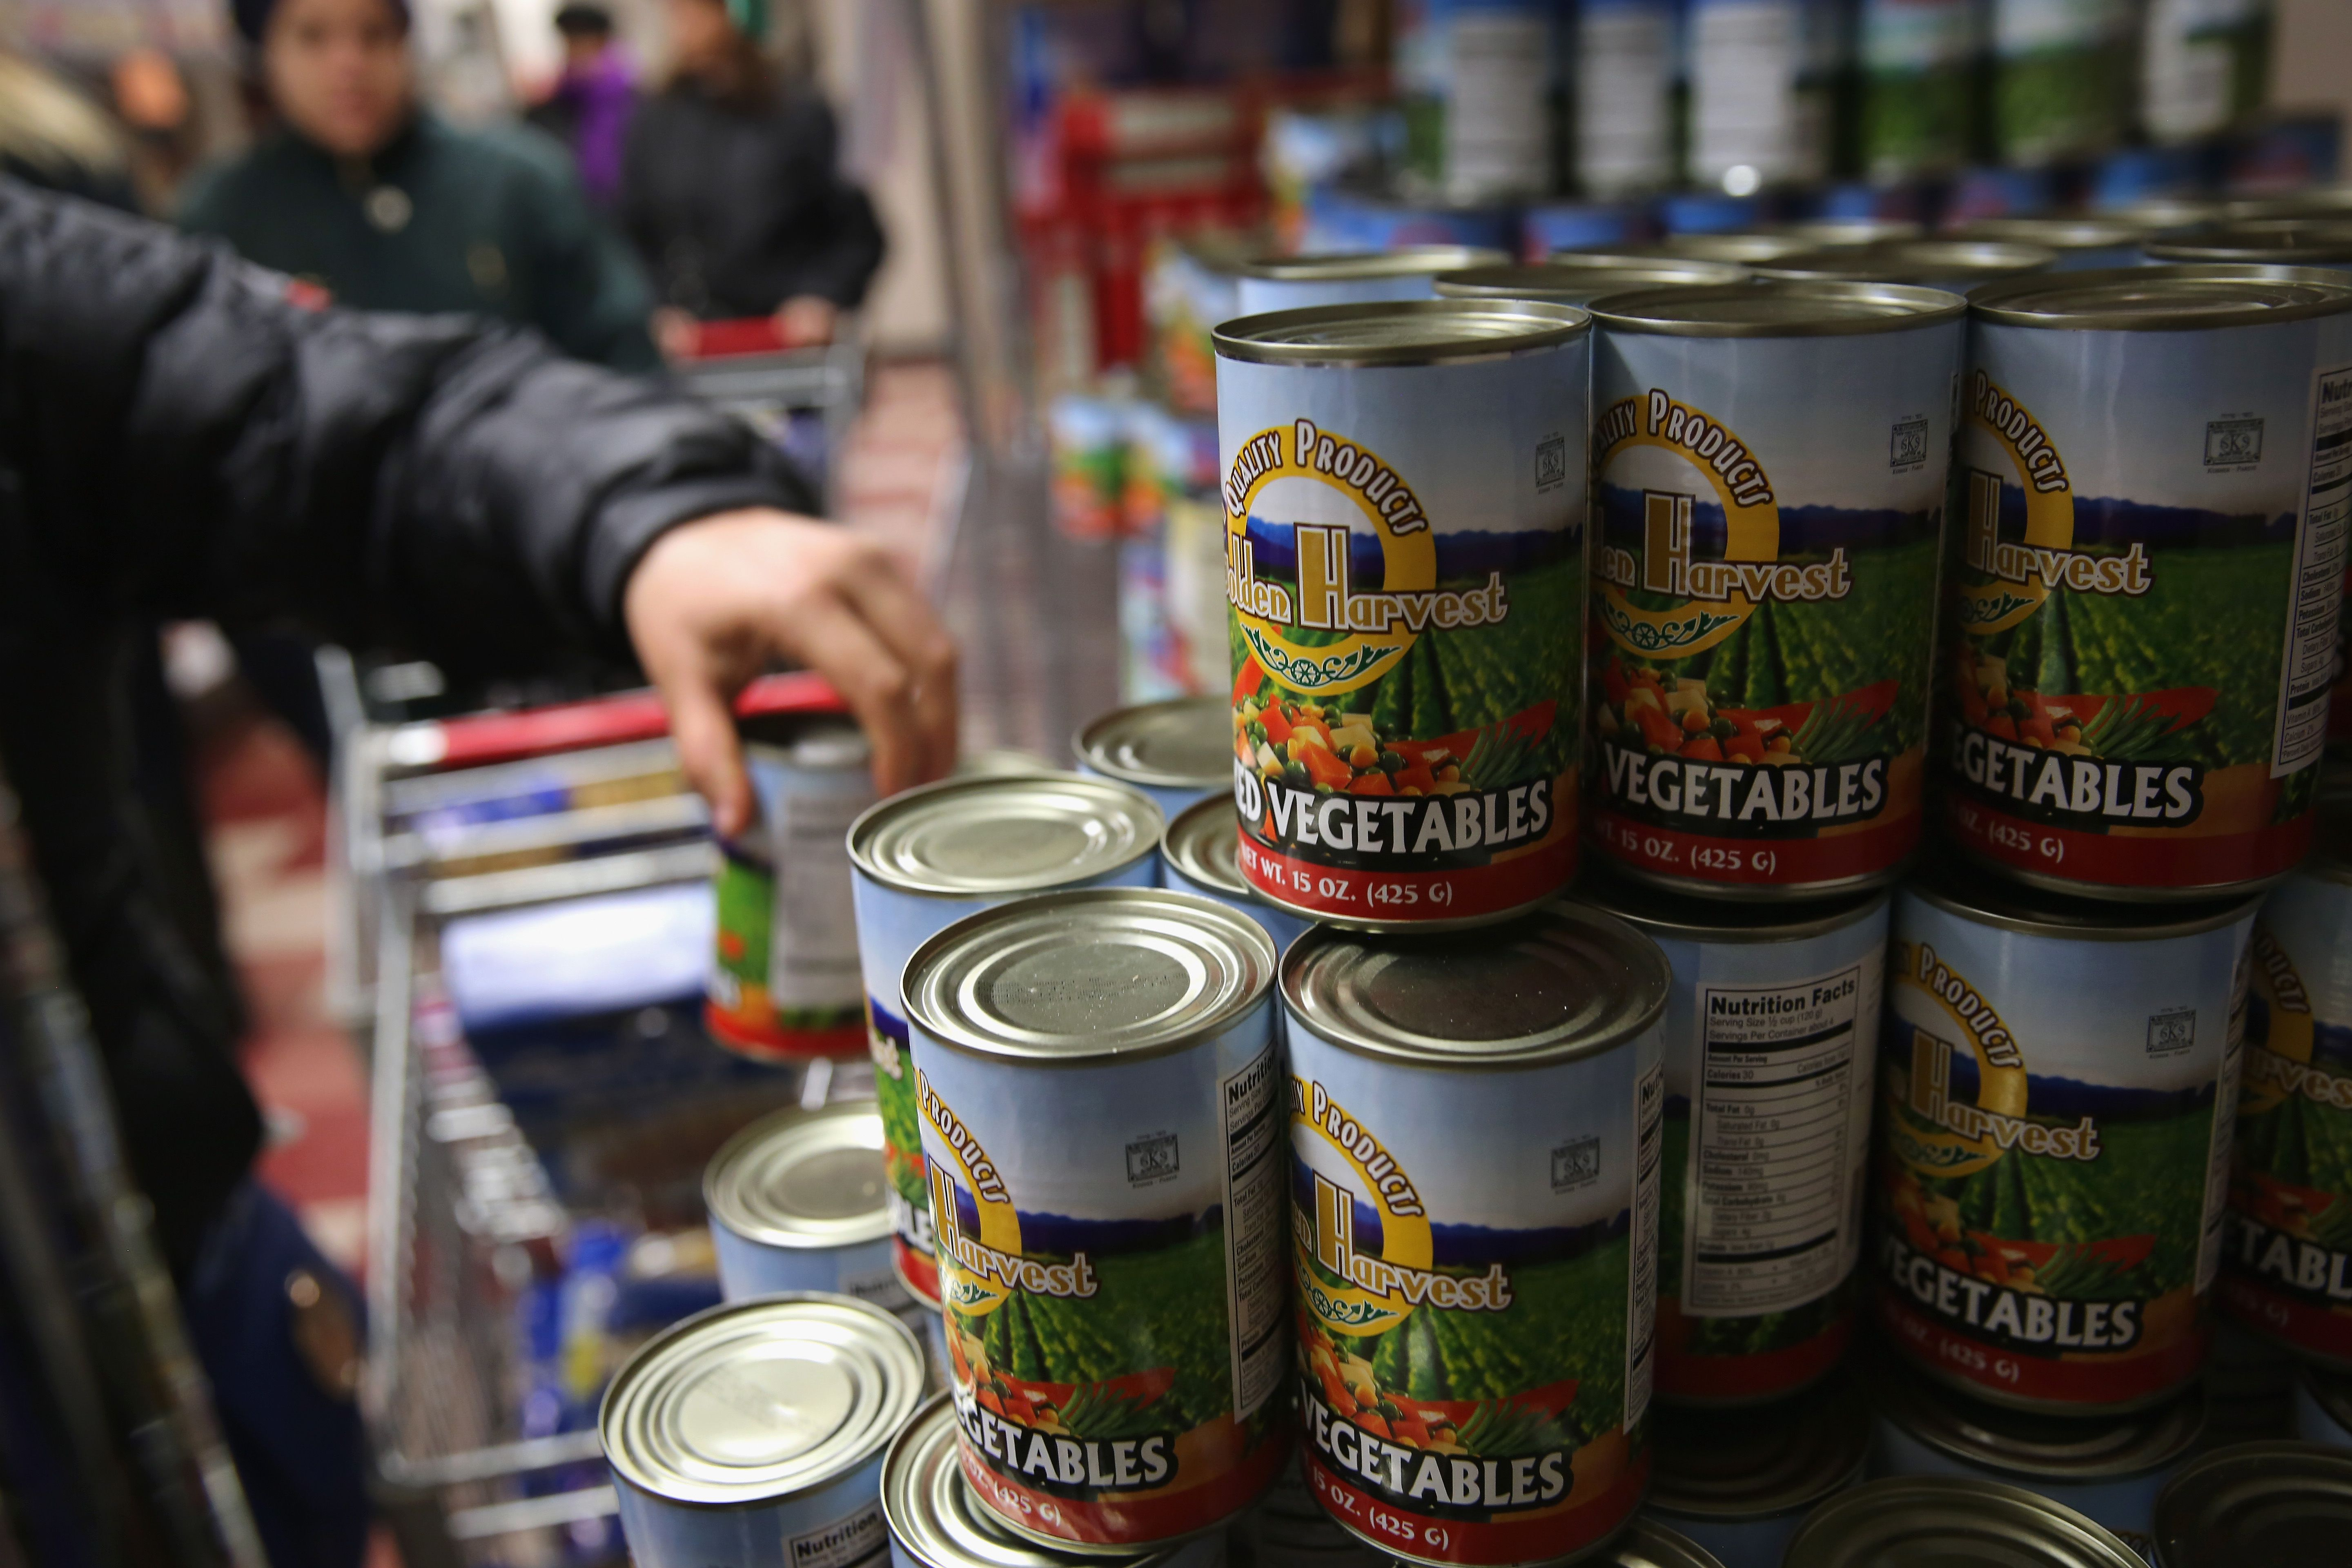 New York City Food Pantry and Soup Kitchen Provides for Harlem Families